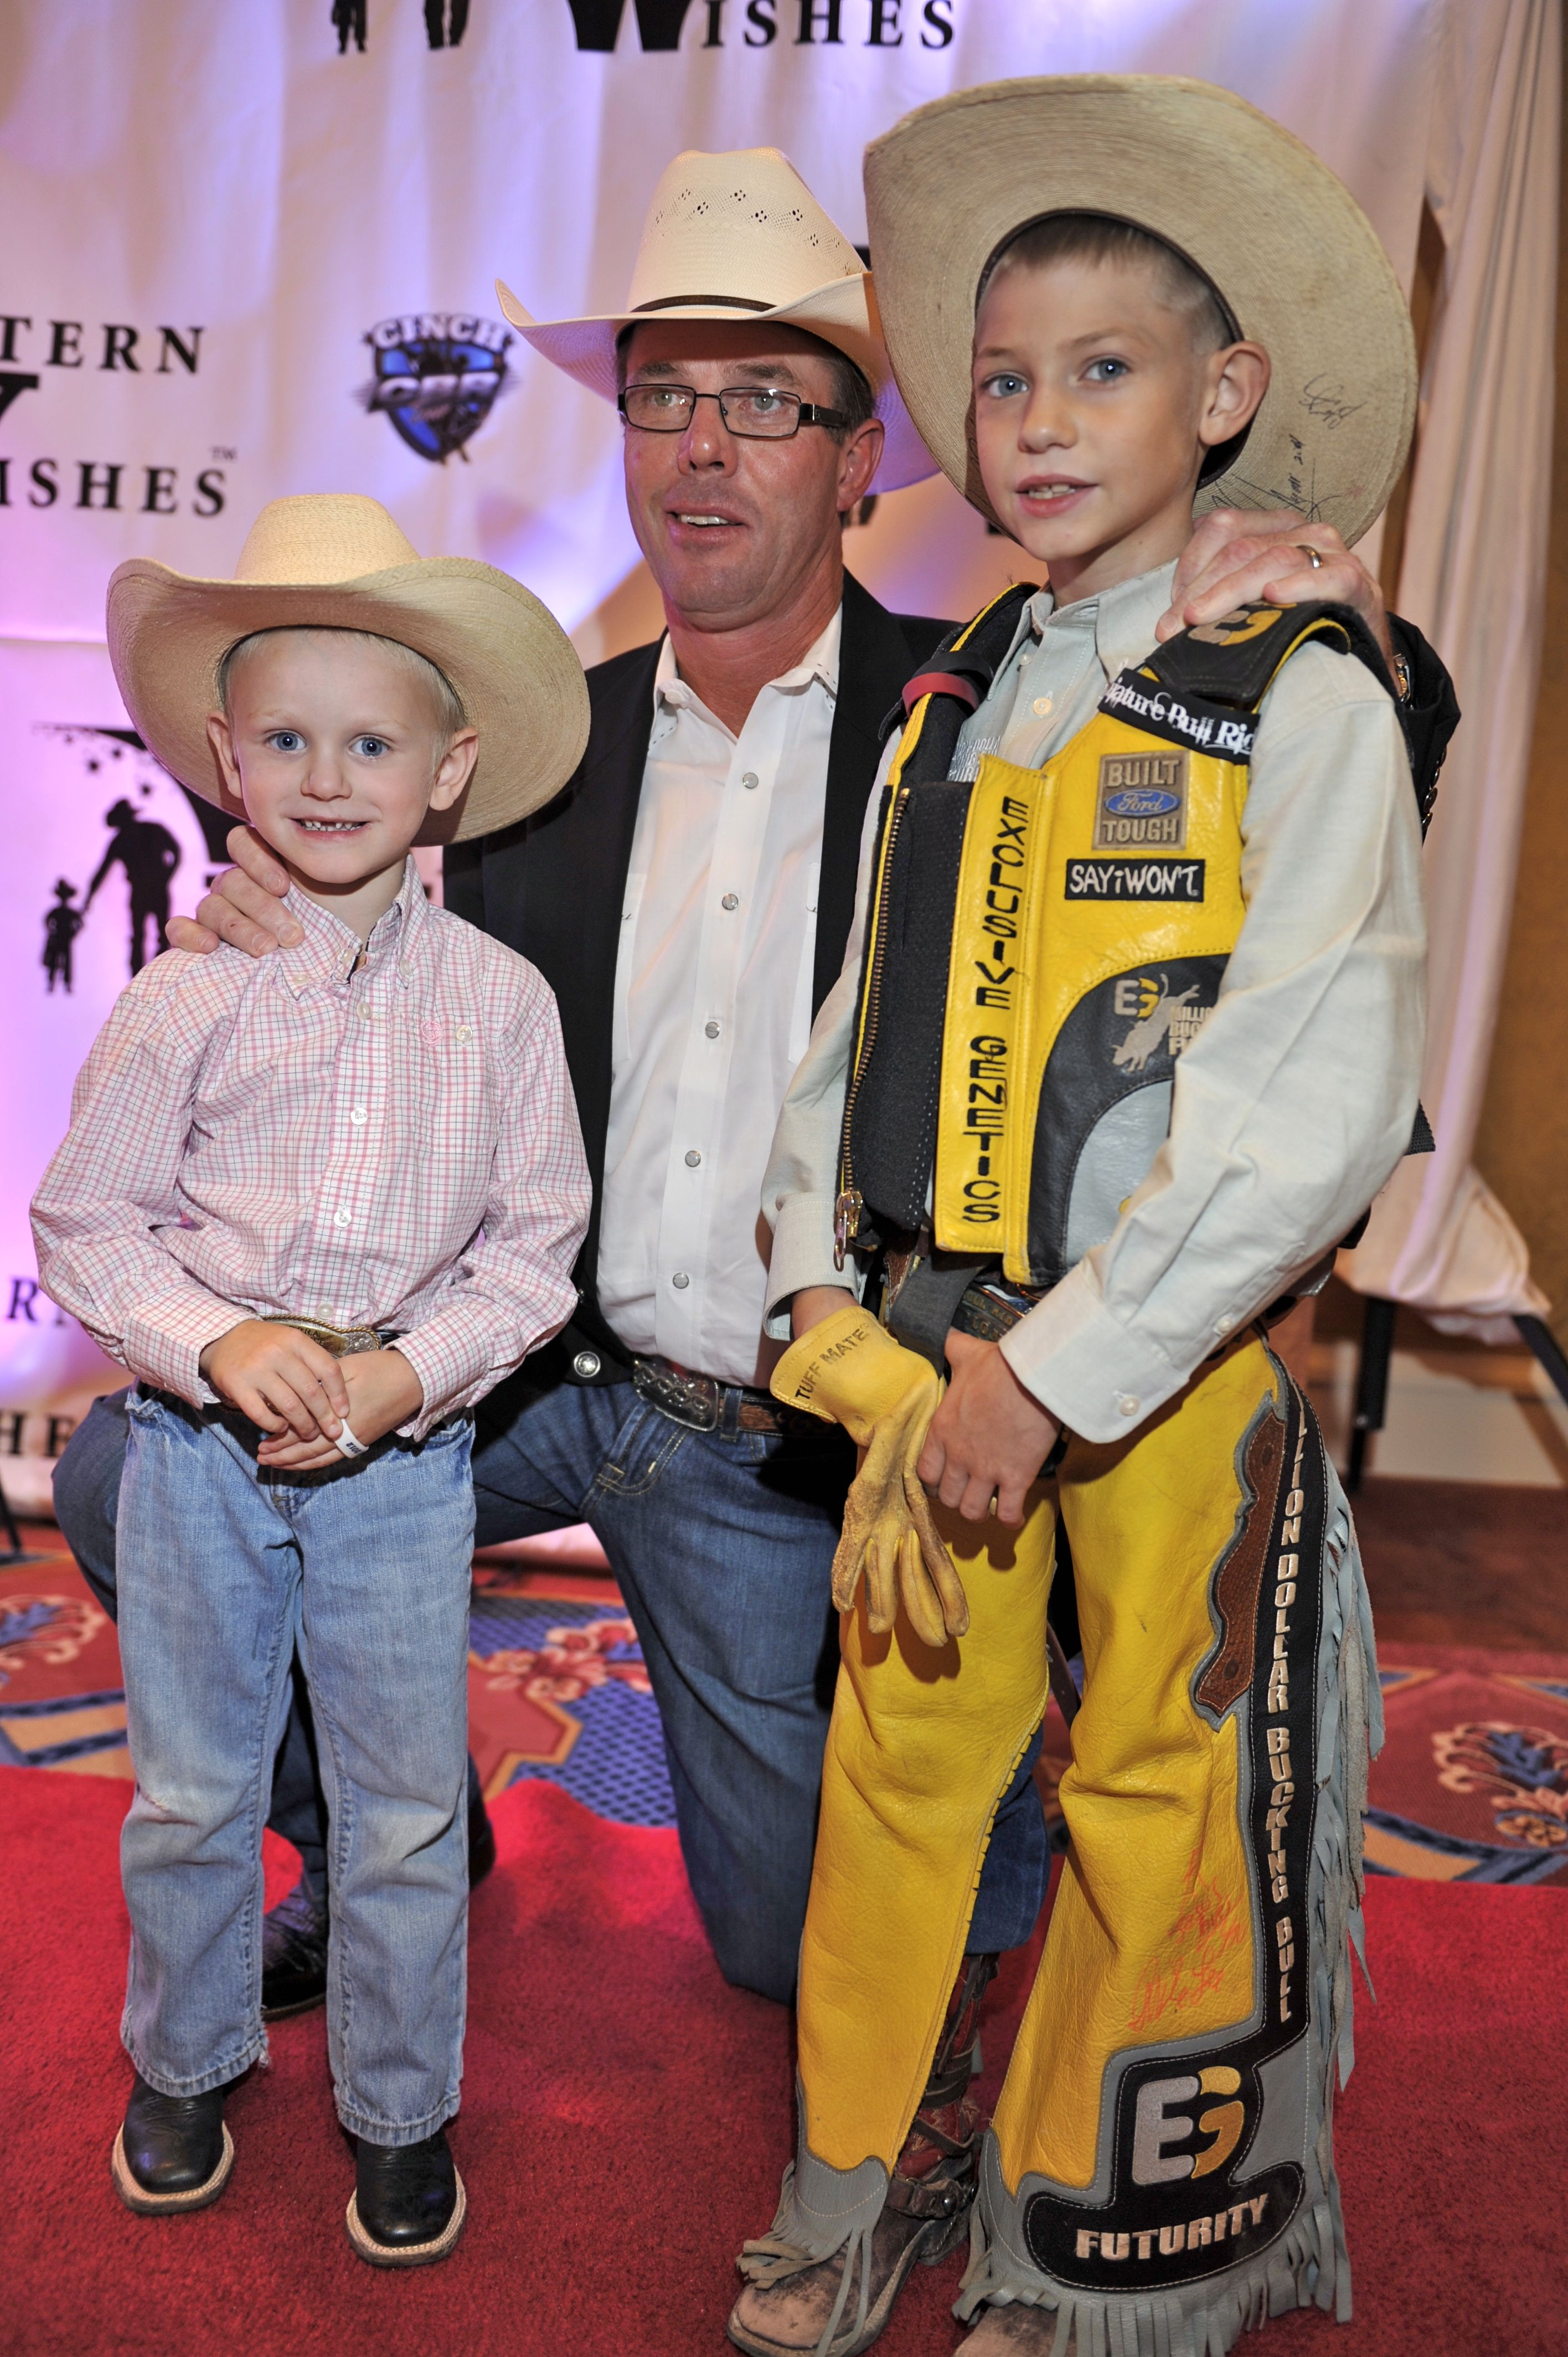 Western Wishes Wrangles Celebrities Rodeo Legends To Make Charity Gala Event A Memorable Night